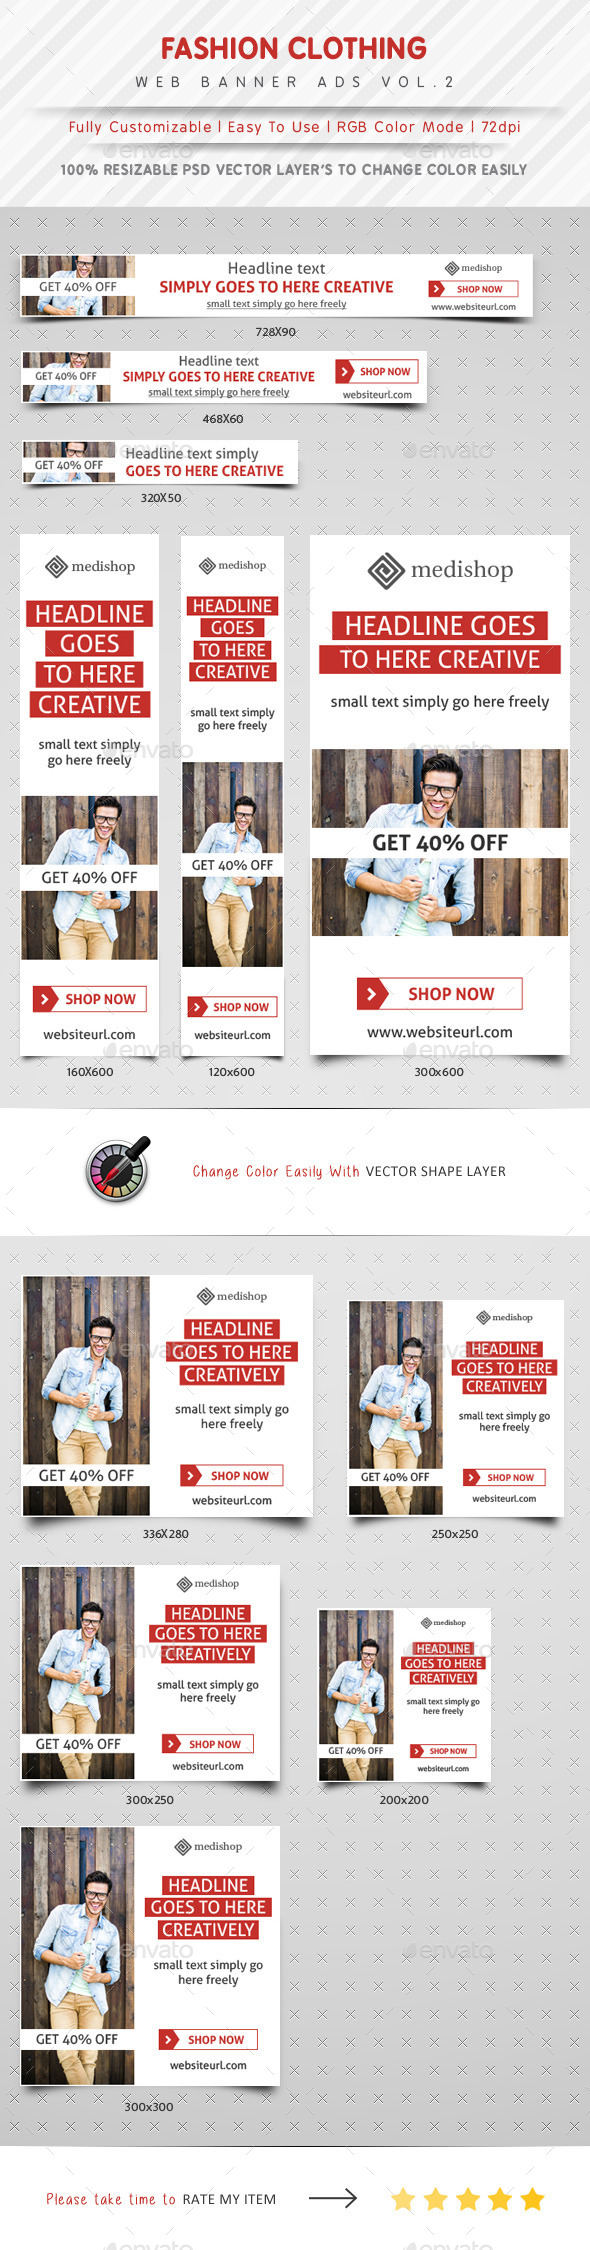 GraphicRiver Fashion Clothing Web Banner Ads Vol.2 11330639